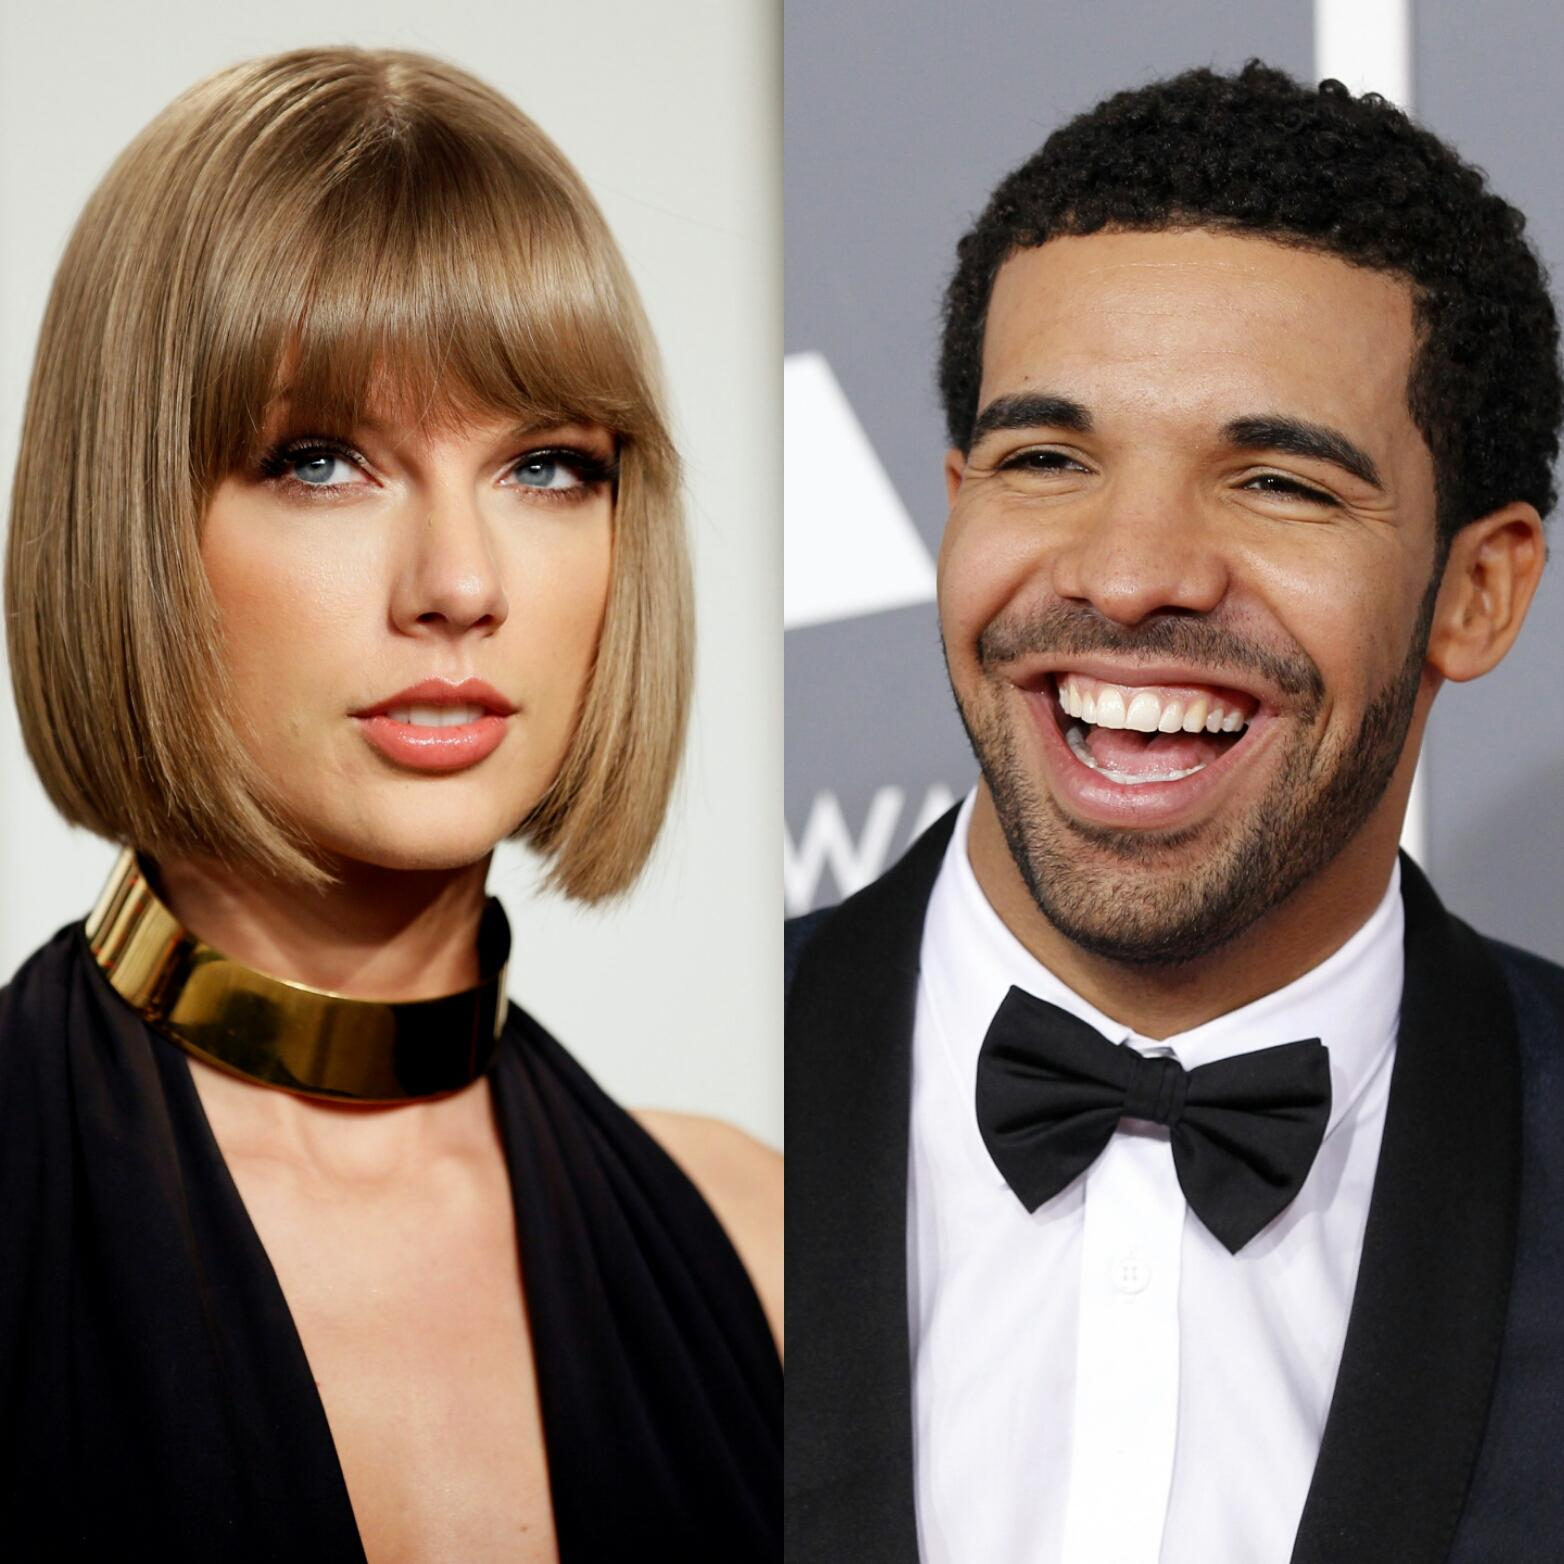 Taylor Swift and Drake